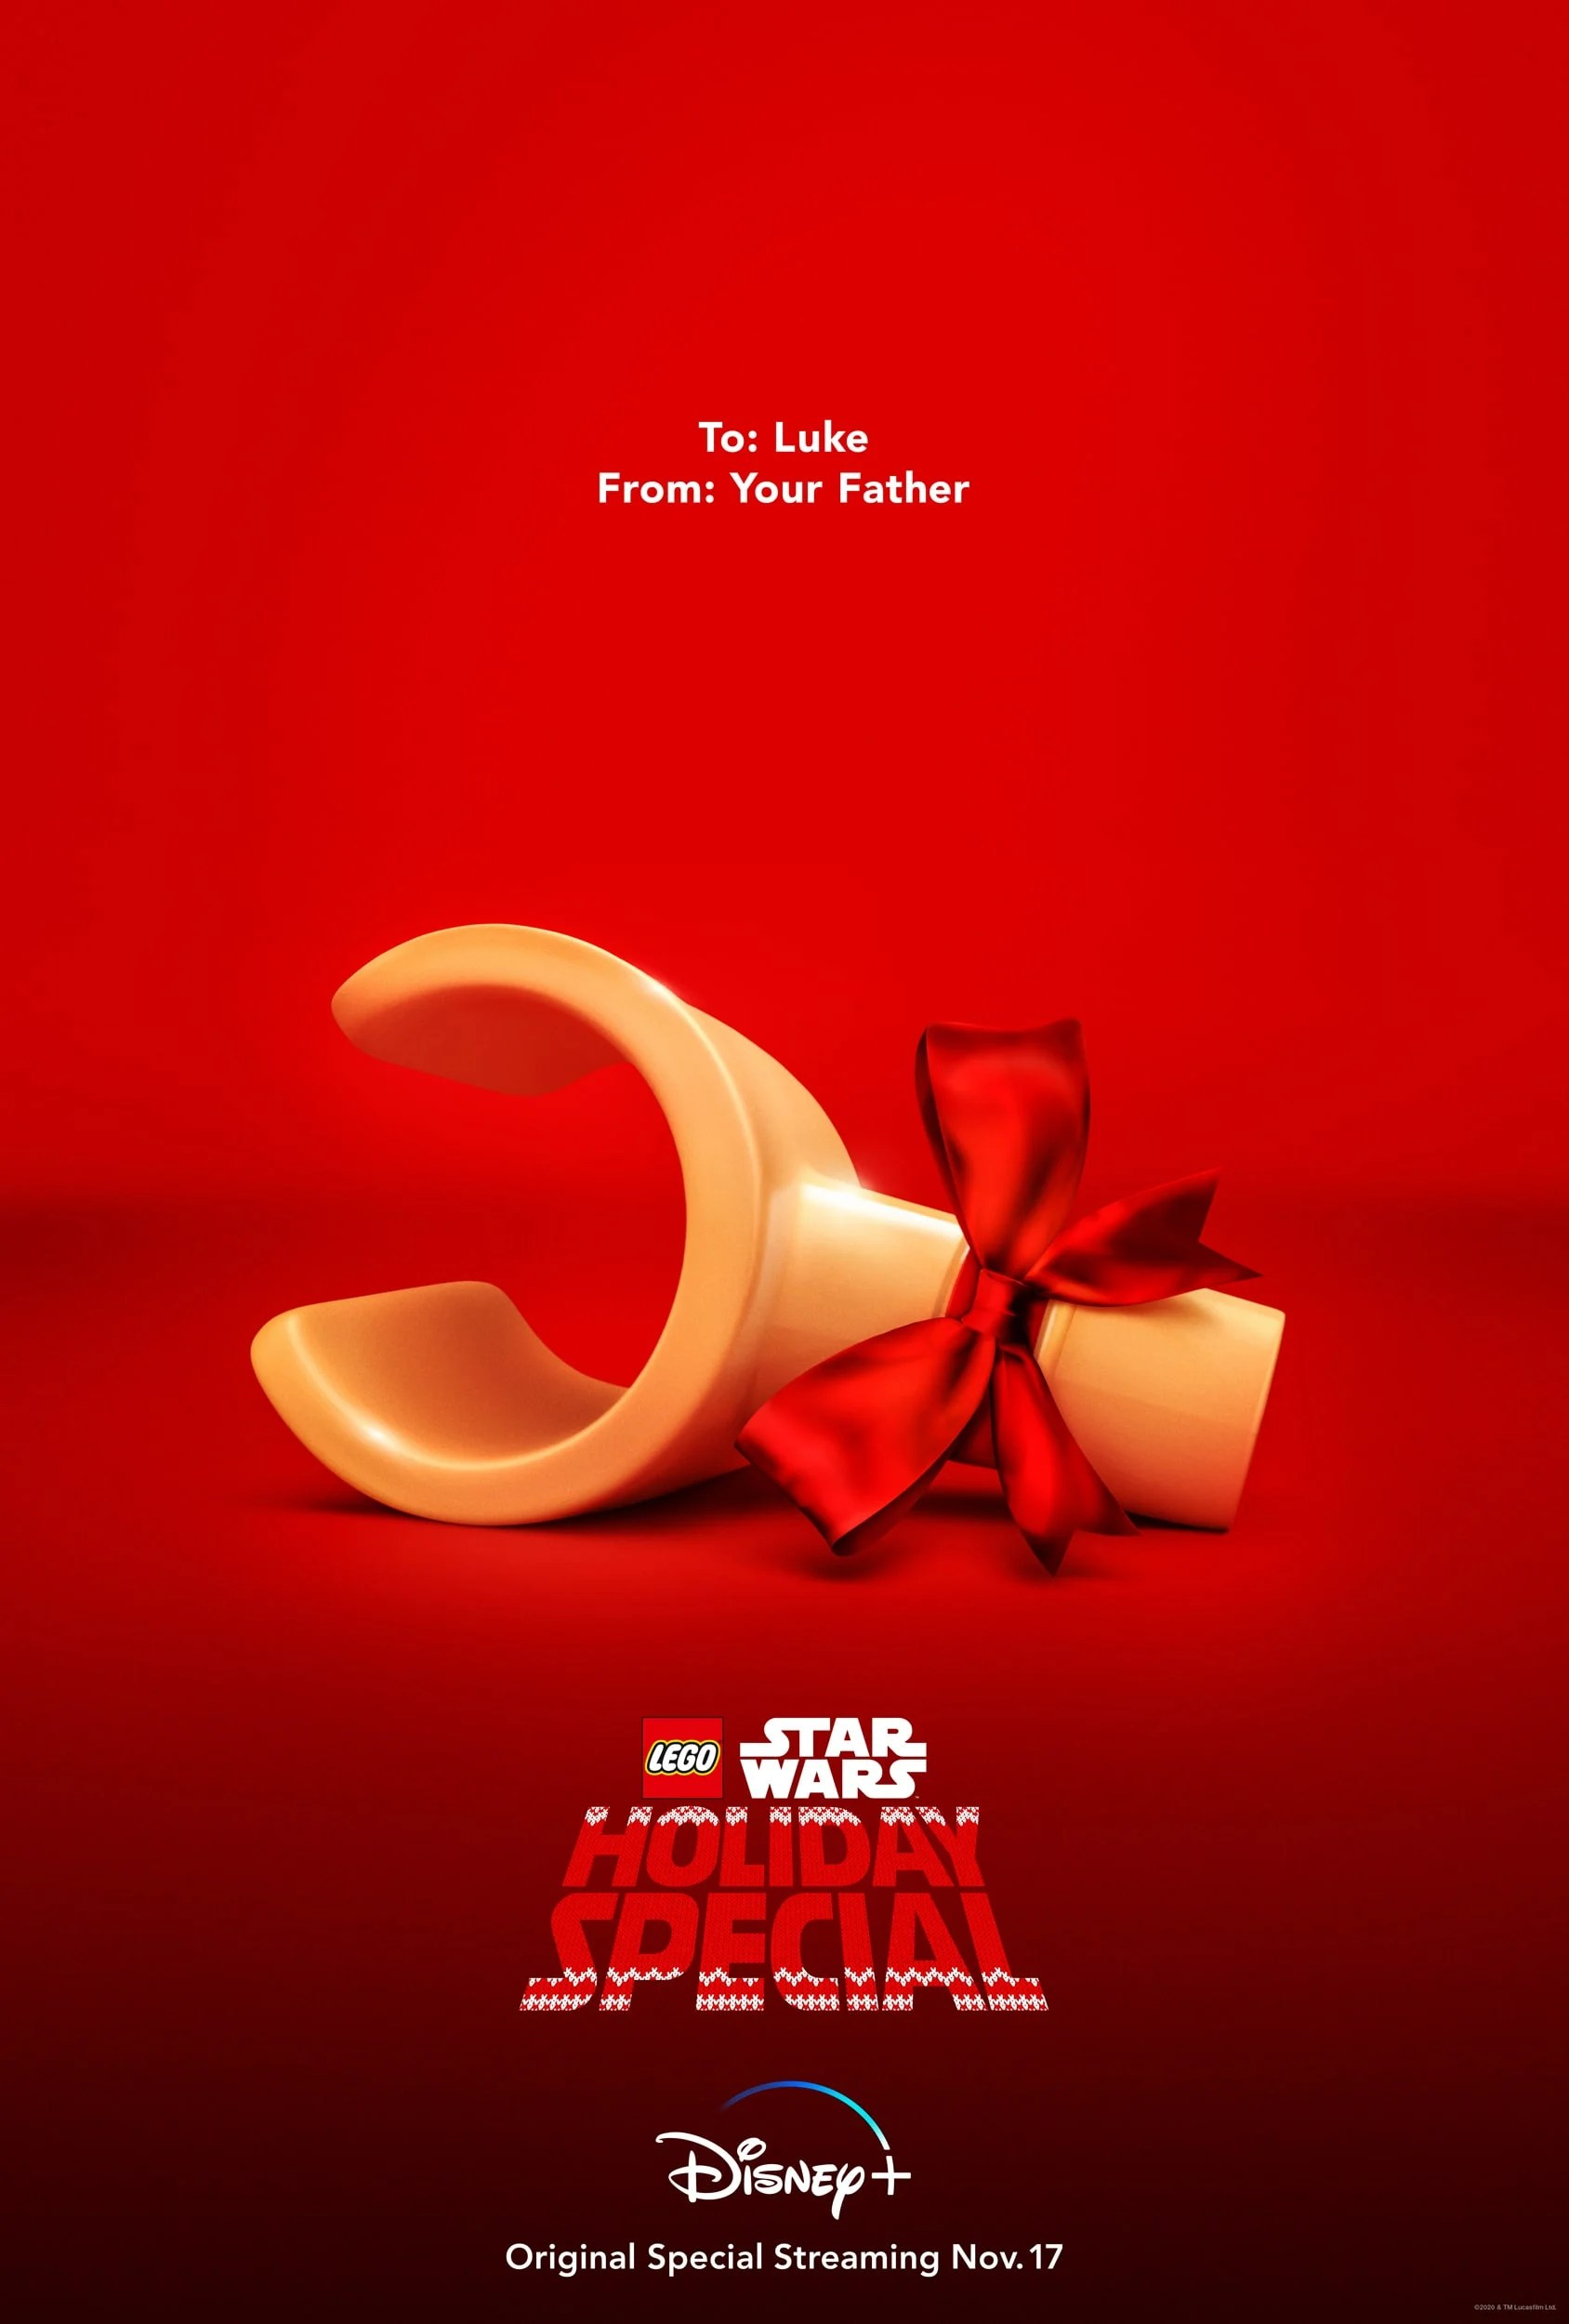 The LEGO Star Wars Holiday Special Poster. The LEGO Star Wars Holiday Special reunites Rey, Finn, Poe, Chewie, Rose, and the droids for a joyous feast on Life Day. Join BB-8 on a new adventure to gain a deeper knowledge of the Force premiering on Disney+ November 17.